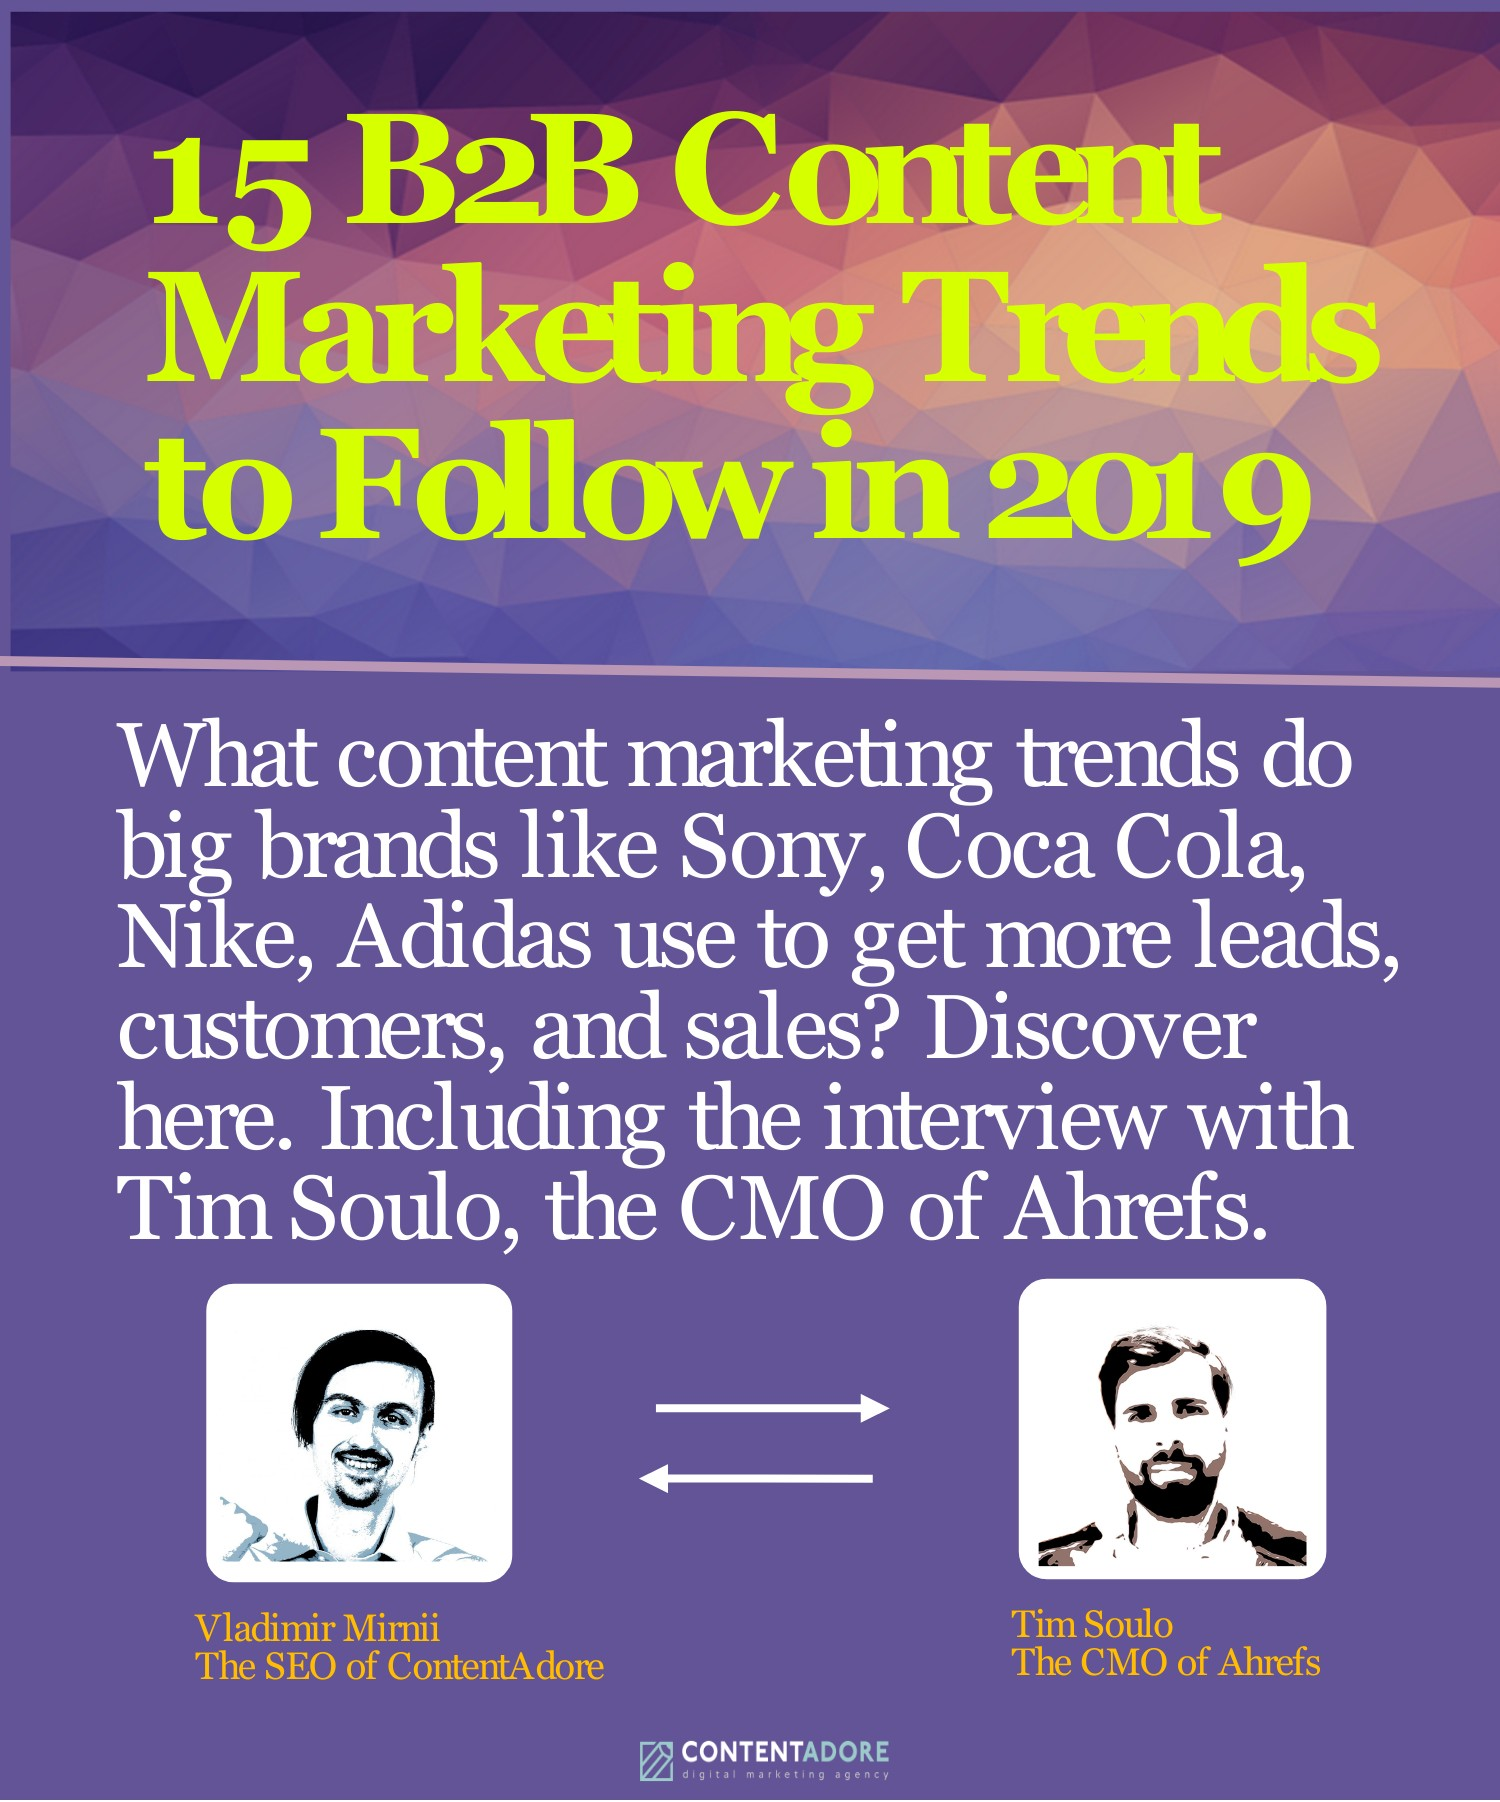 15 B2B Content Marketing 2019